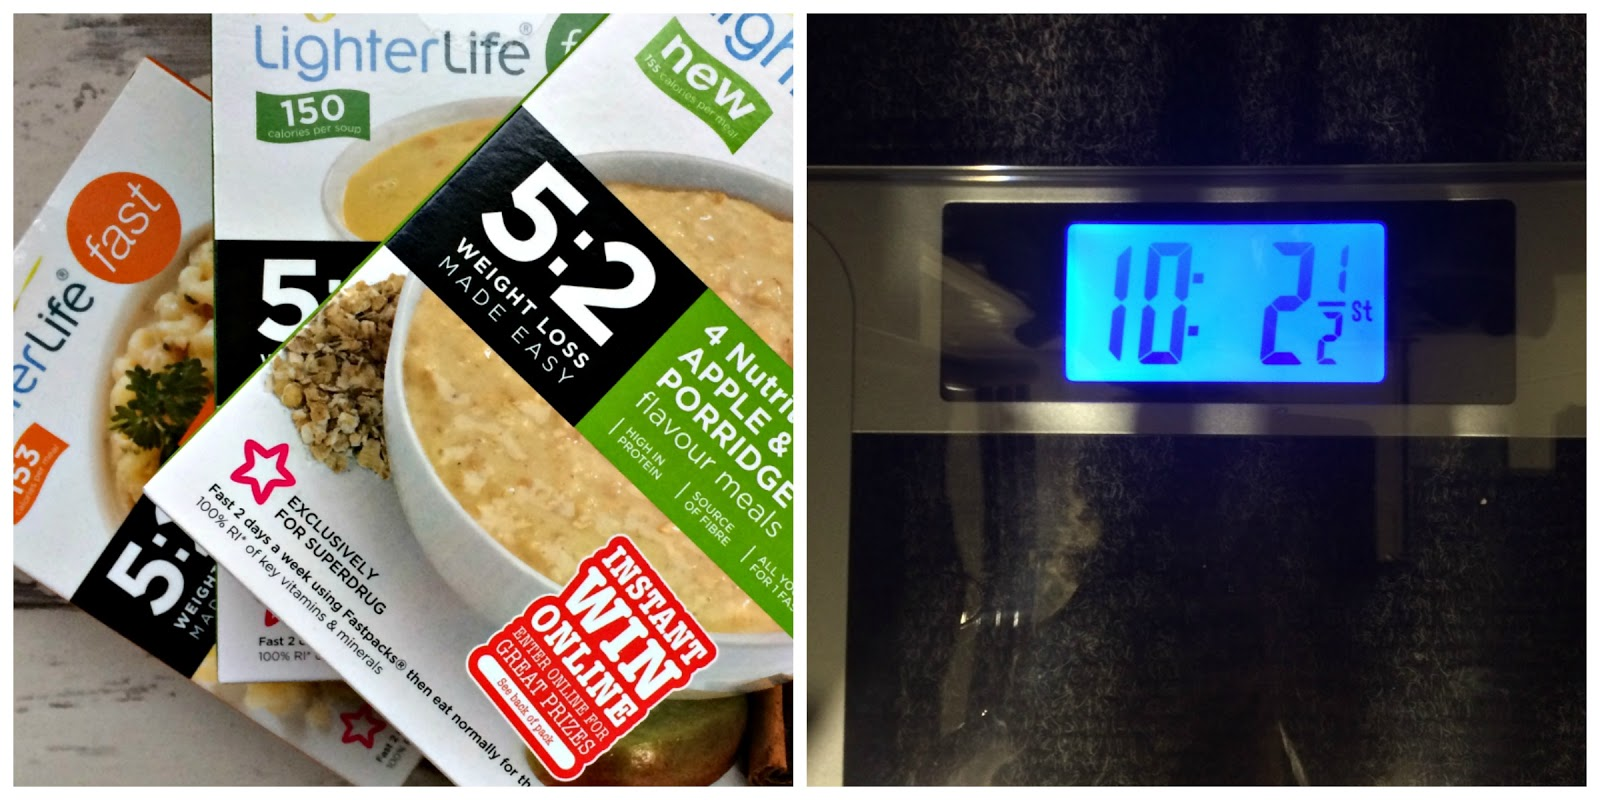 Selection of LighterLife Fast ready meals and weighing scales showing weight of 10 st 2lbs